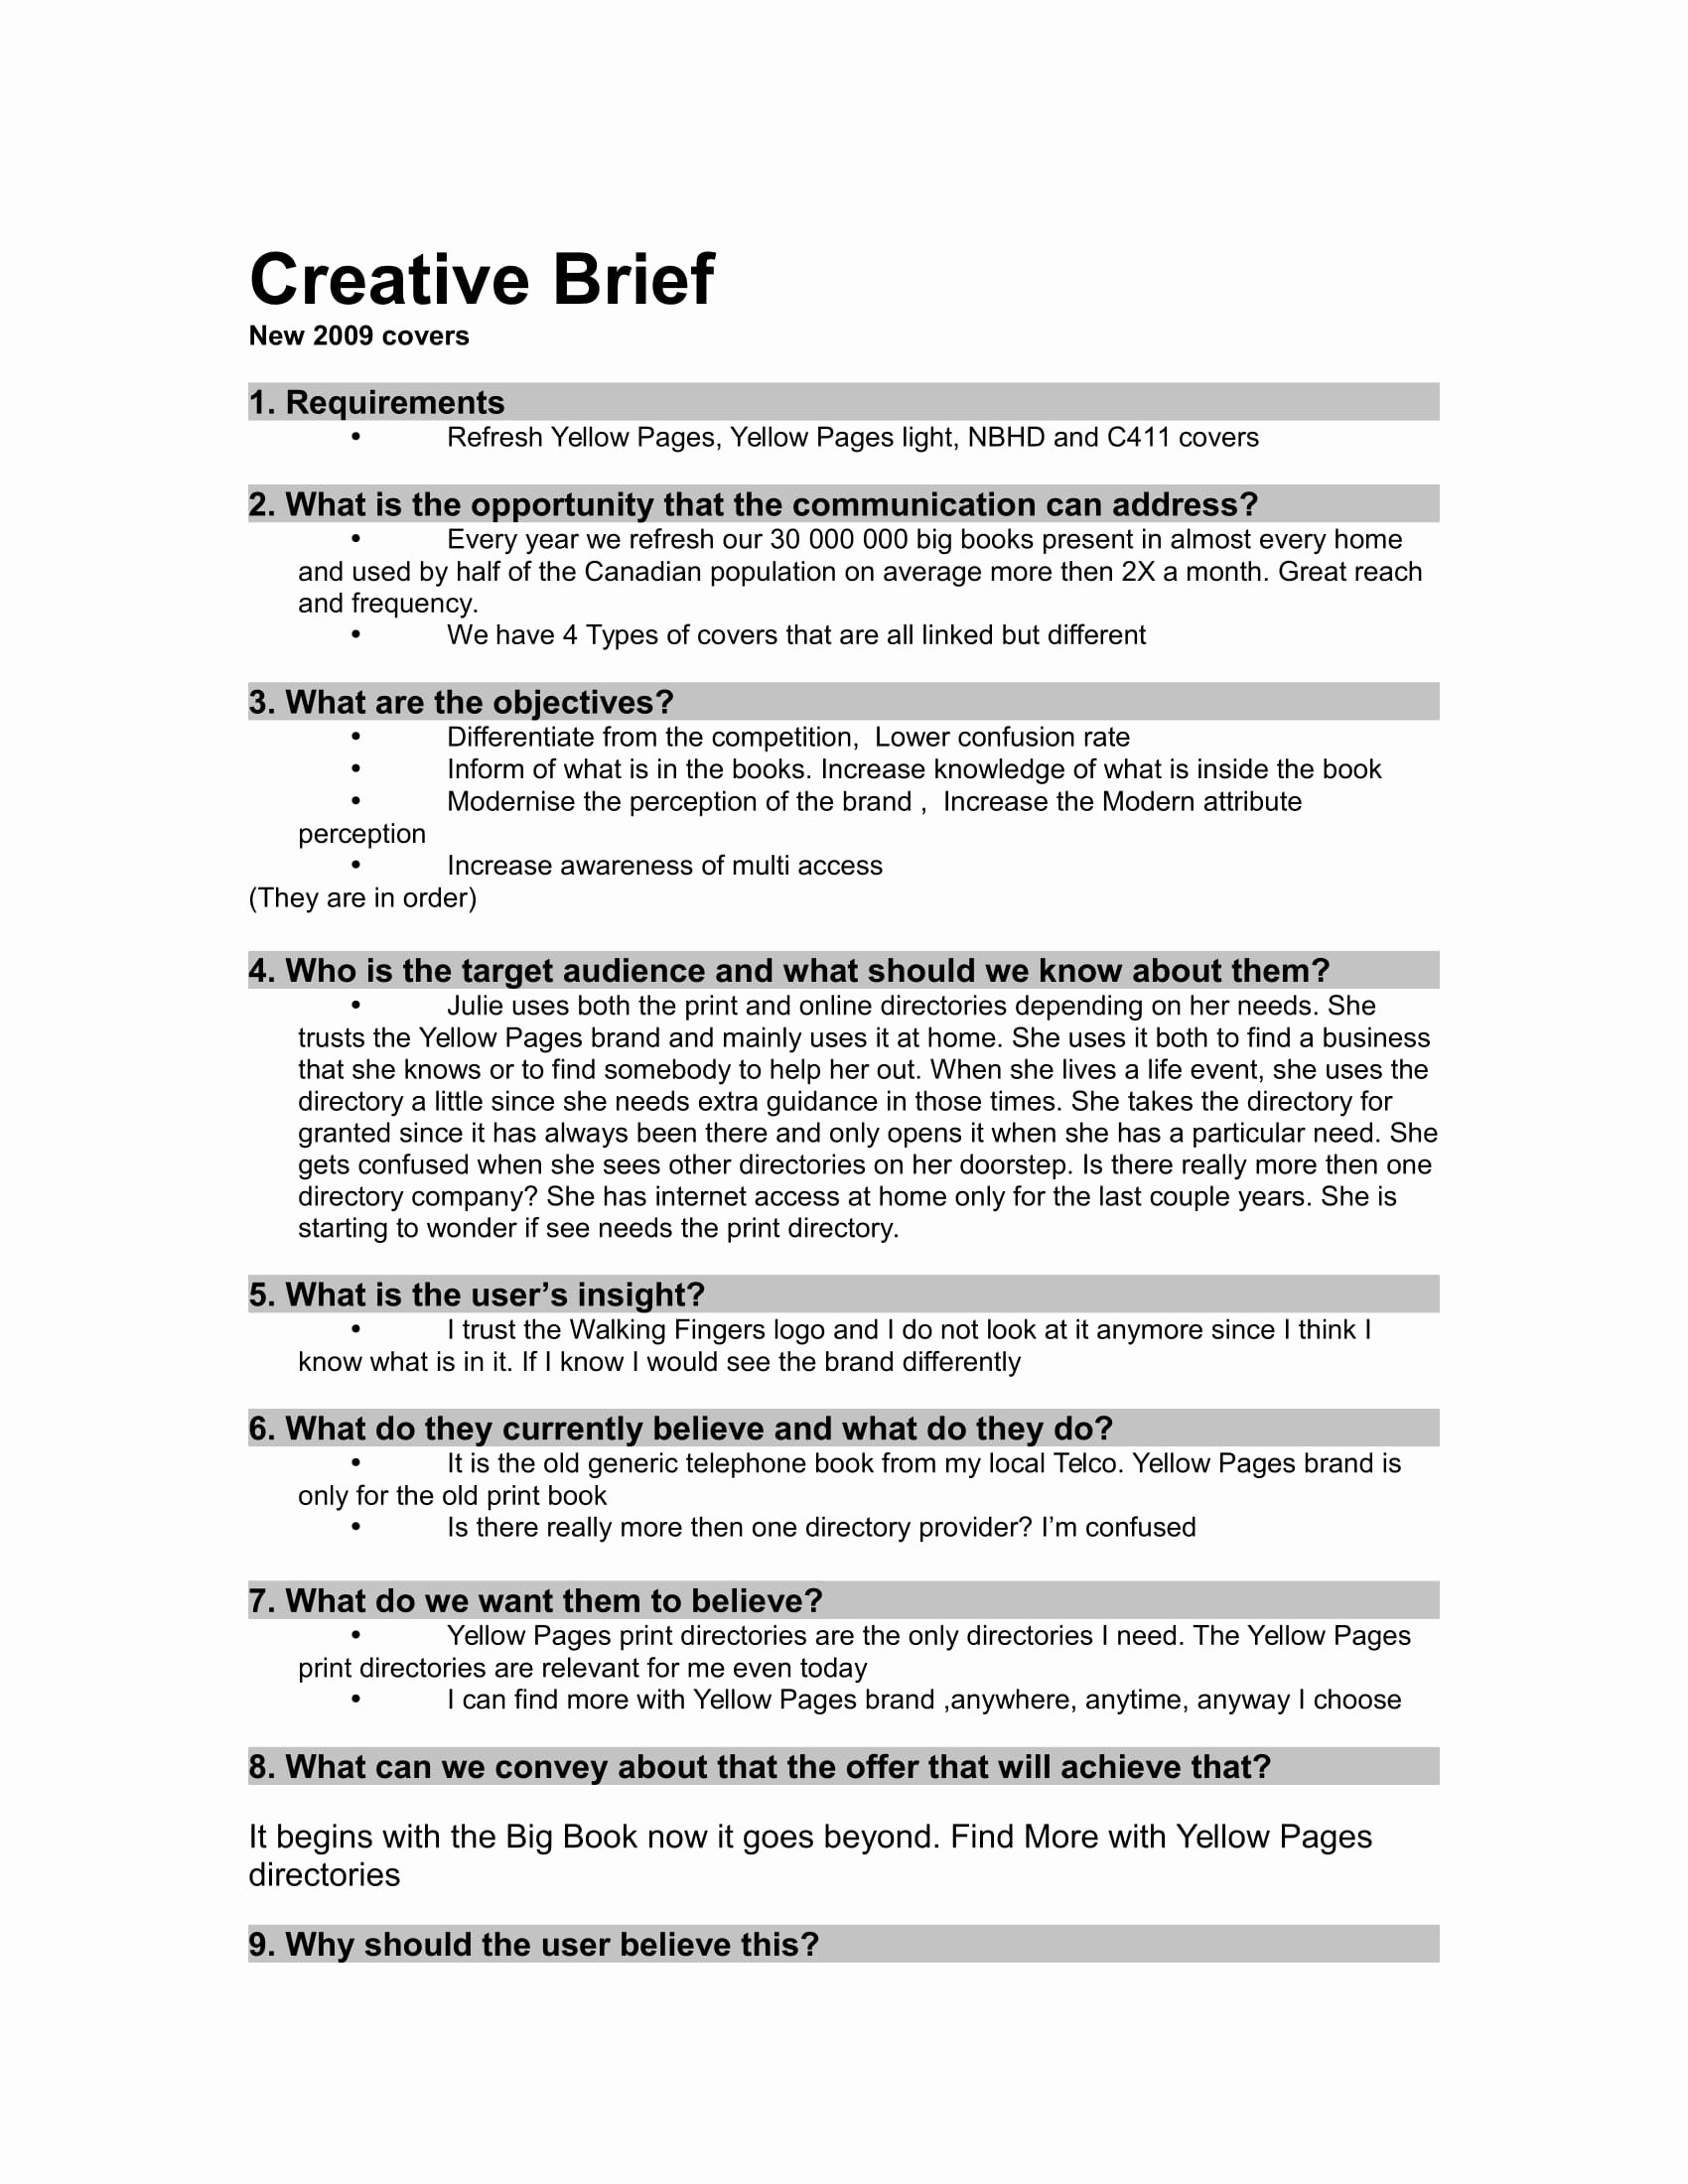 Creative Brief Sample Pdf Luxury 32 Free Creative Brief Templates and Examples Pdf Doc